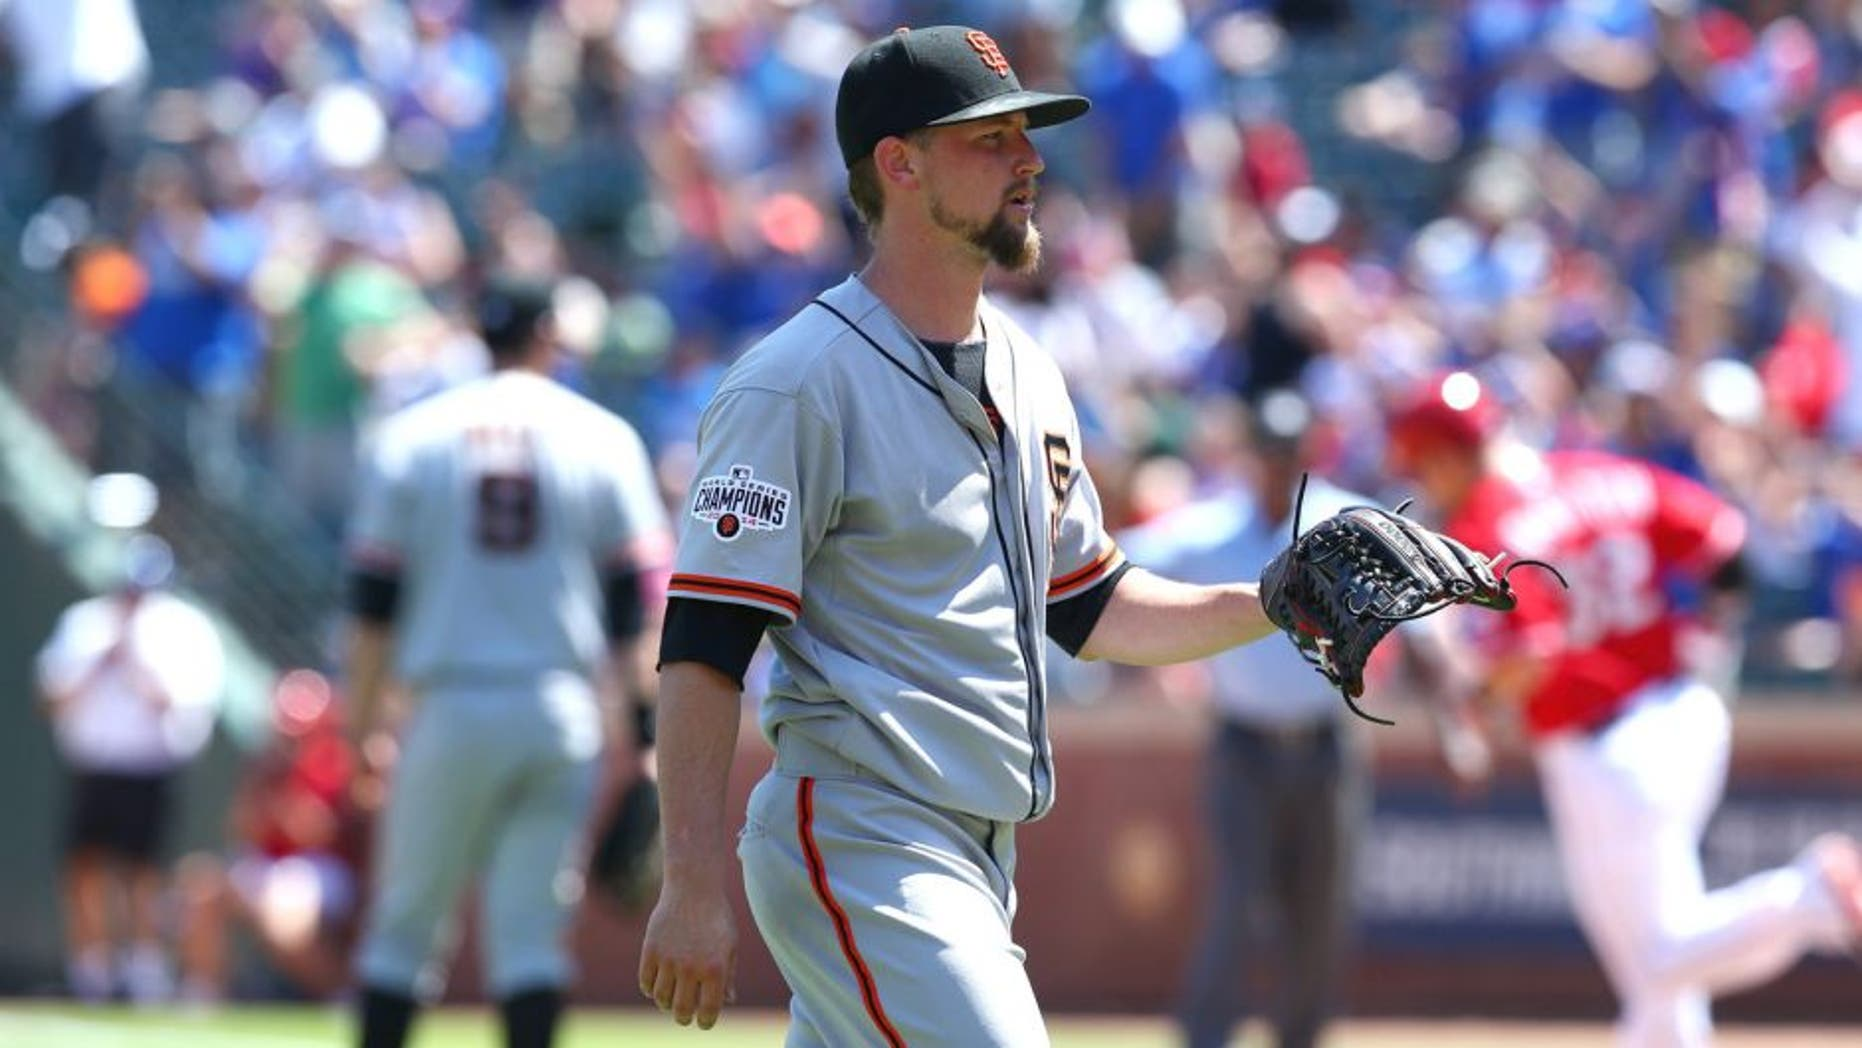 ARLINGTON, TX - AUGUST 02: Mike Leake #13 of the San Francisco Giants steps off the mound after giving up a two-run home run against Josh Hamilton #32 of the Texas Rangers in the sixth inning at Globe Life Park in Arlington on August 2, 2015 in Arlington, Texas. (Photo by Ronald Martinez/Getty Images)